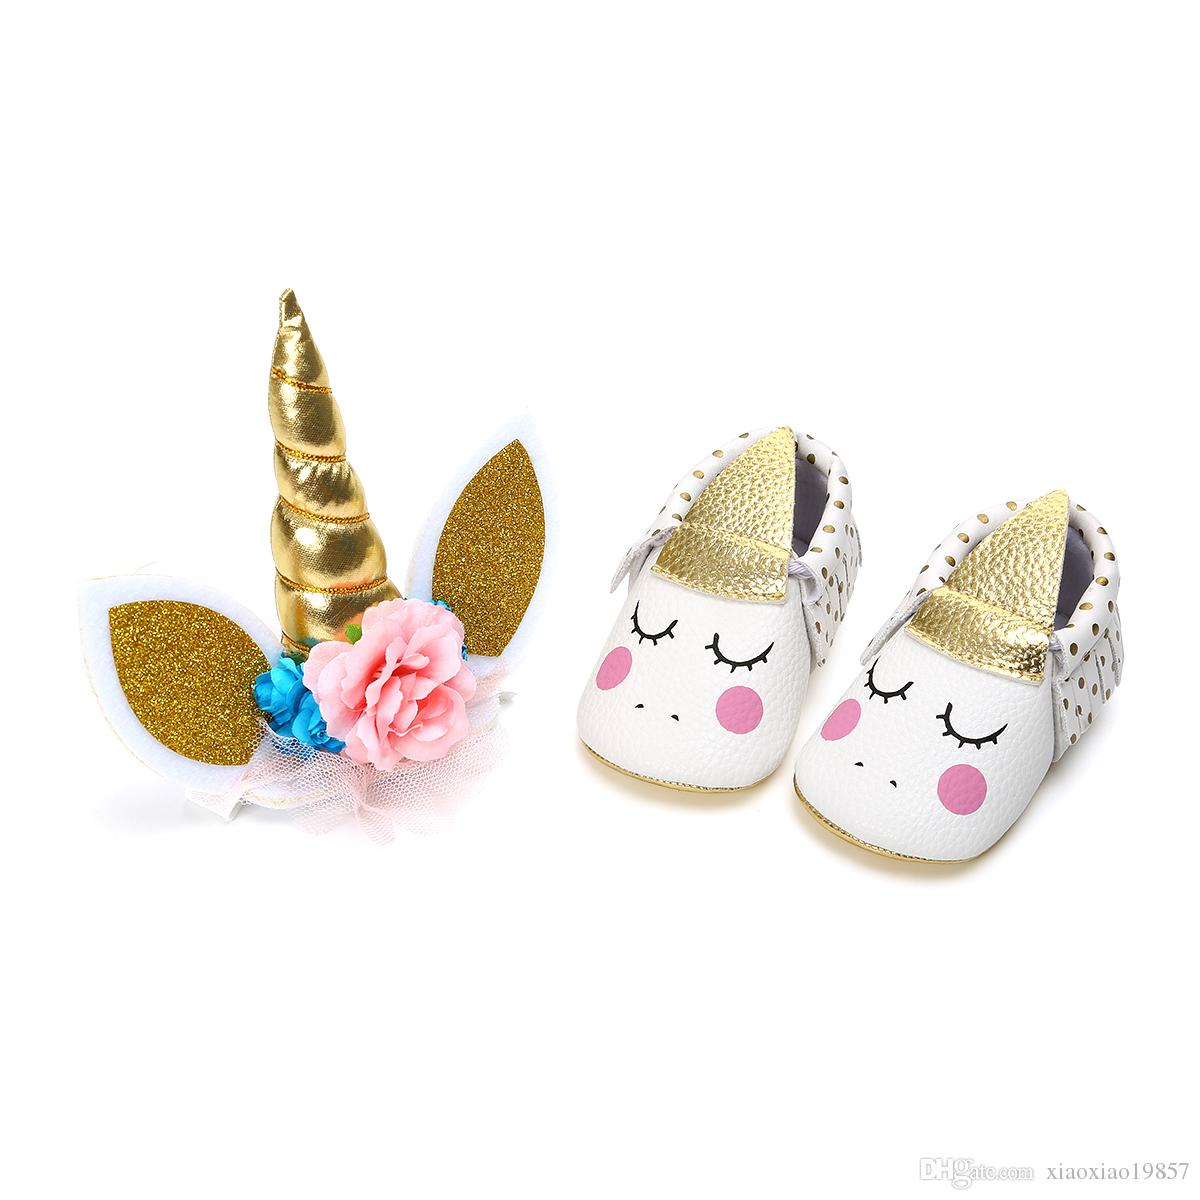 2 pezzi Set Cute Baby Girl nappa Crib Shoes + Unicorn Horns Cake Topper Decor Neonato Prewalker Halloween Birthday Party regalo